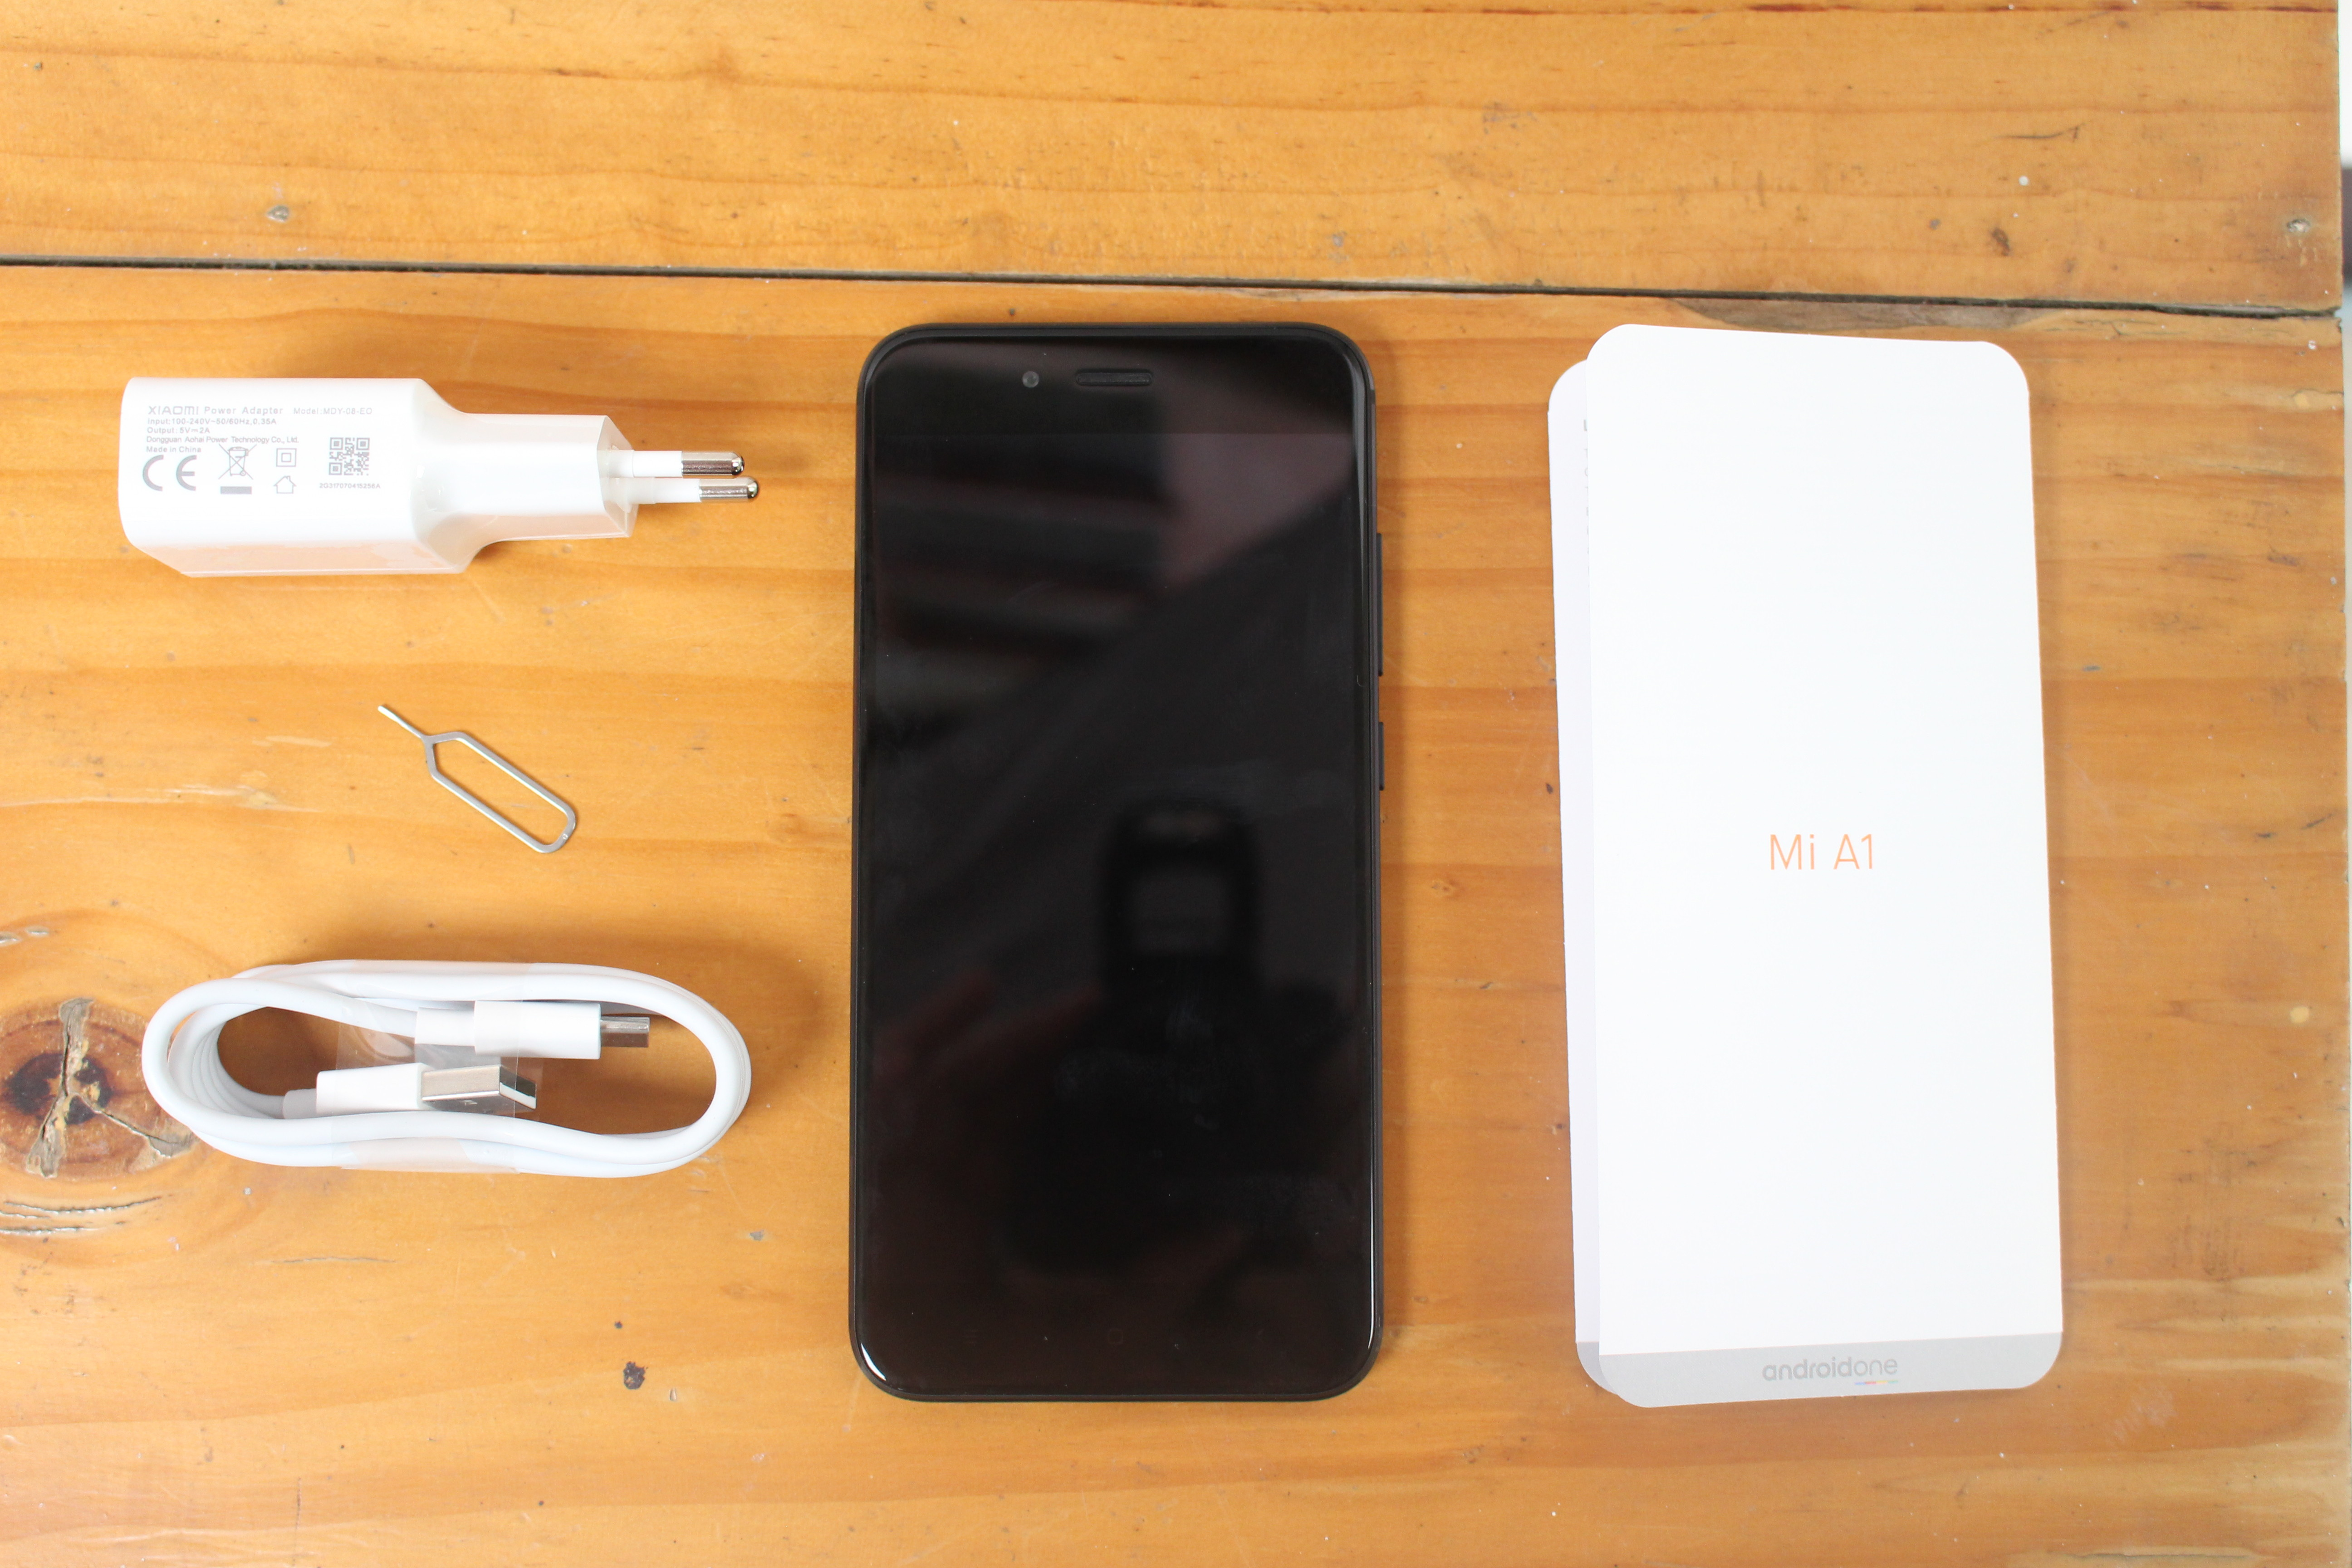 Xiaomi Mi A1 Review - Part 1: Unboxing, First Boot, Firmware